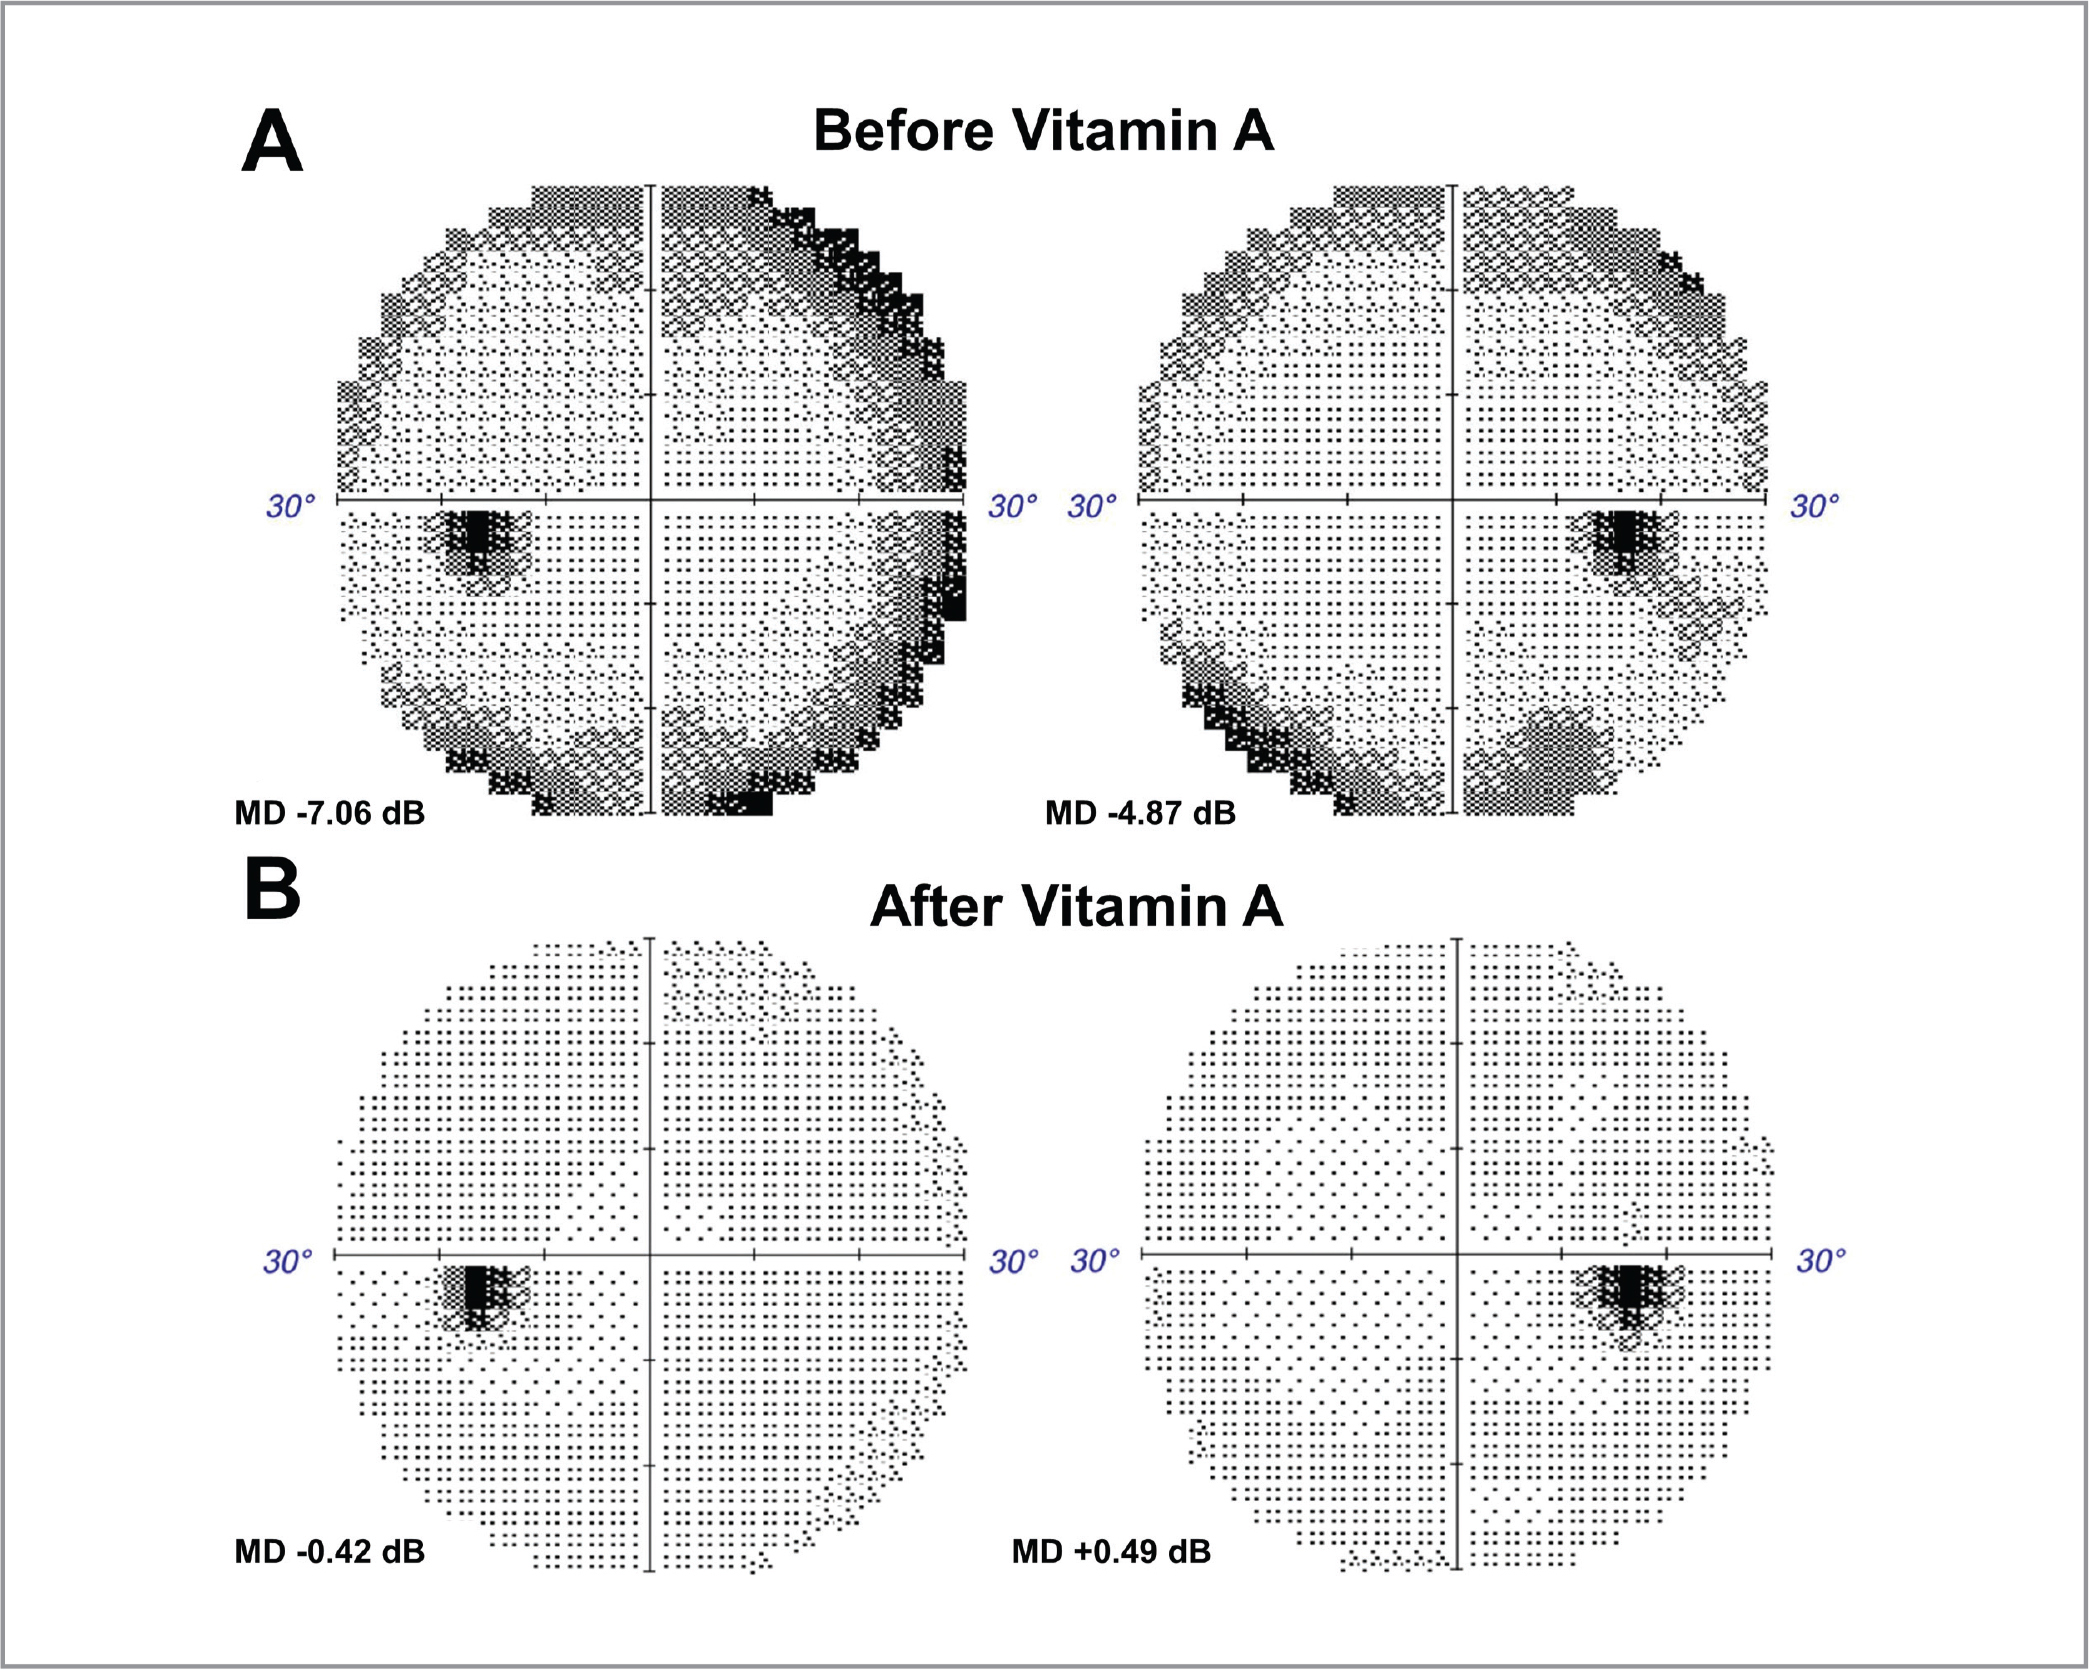 30-2 Humphrey visual field studies of both eyes in a patient with vitamin A deficiency (A) before and (B) 3 months after vitamin A supplementation, showing recovery of visual field constriction. MD = mean deviation.